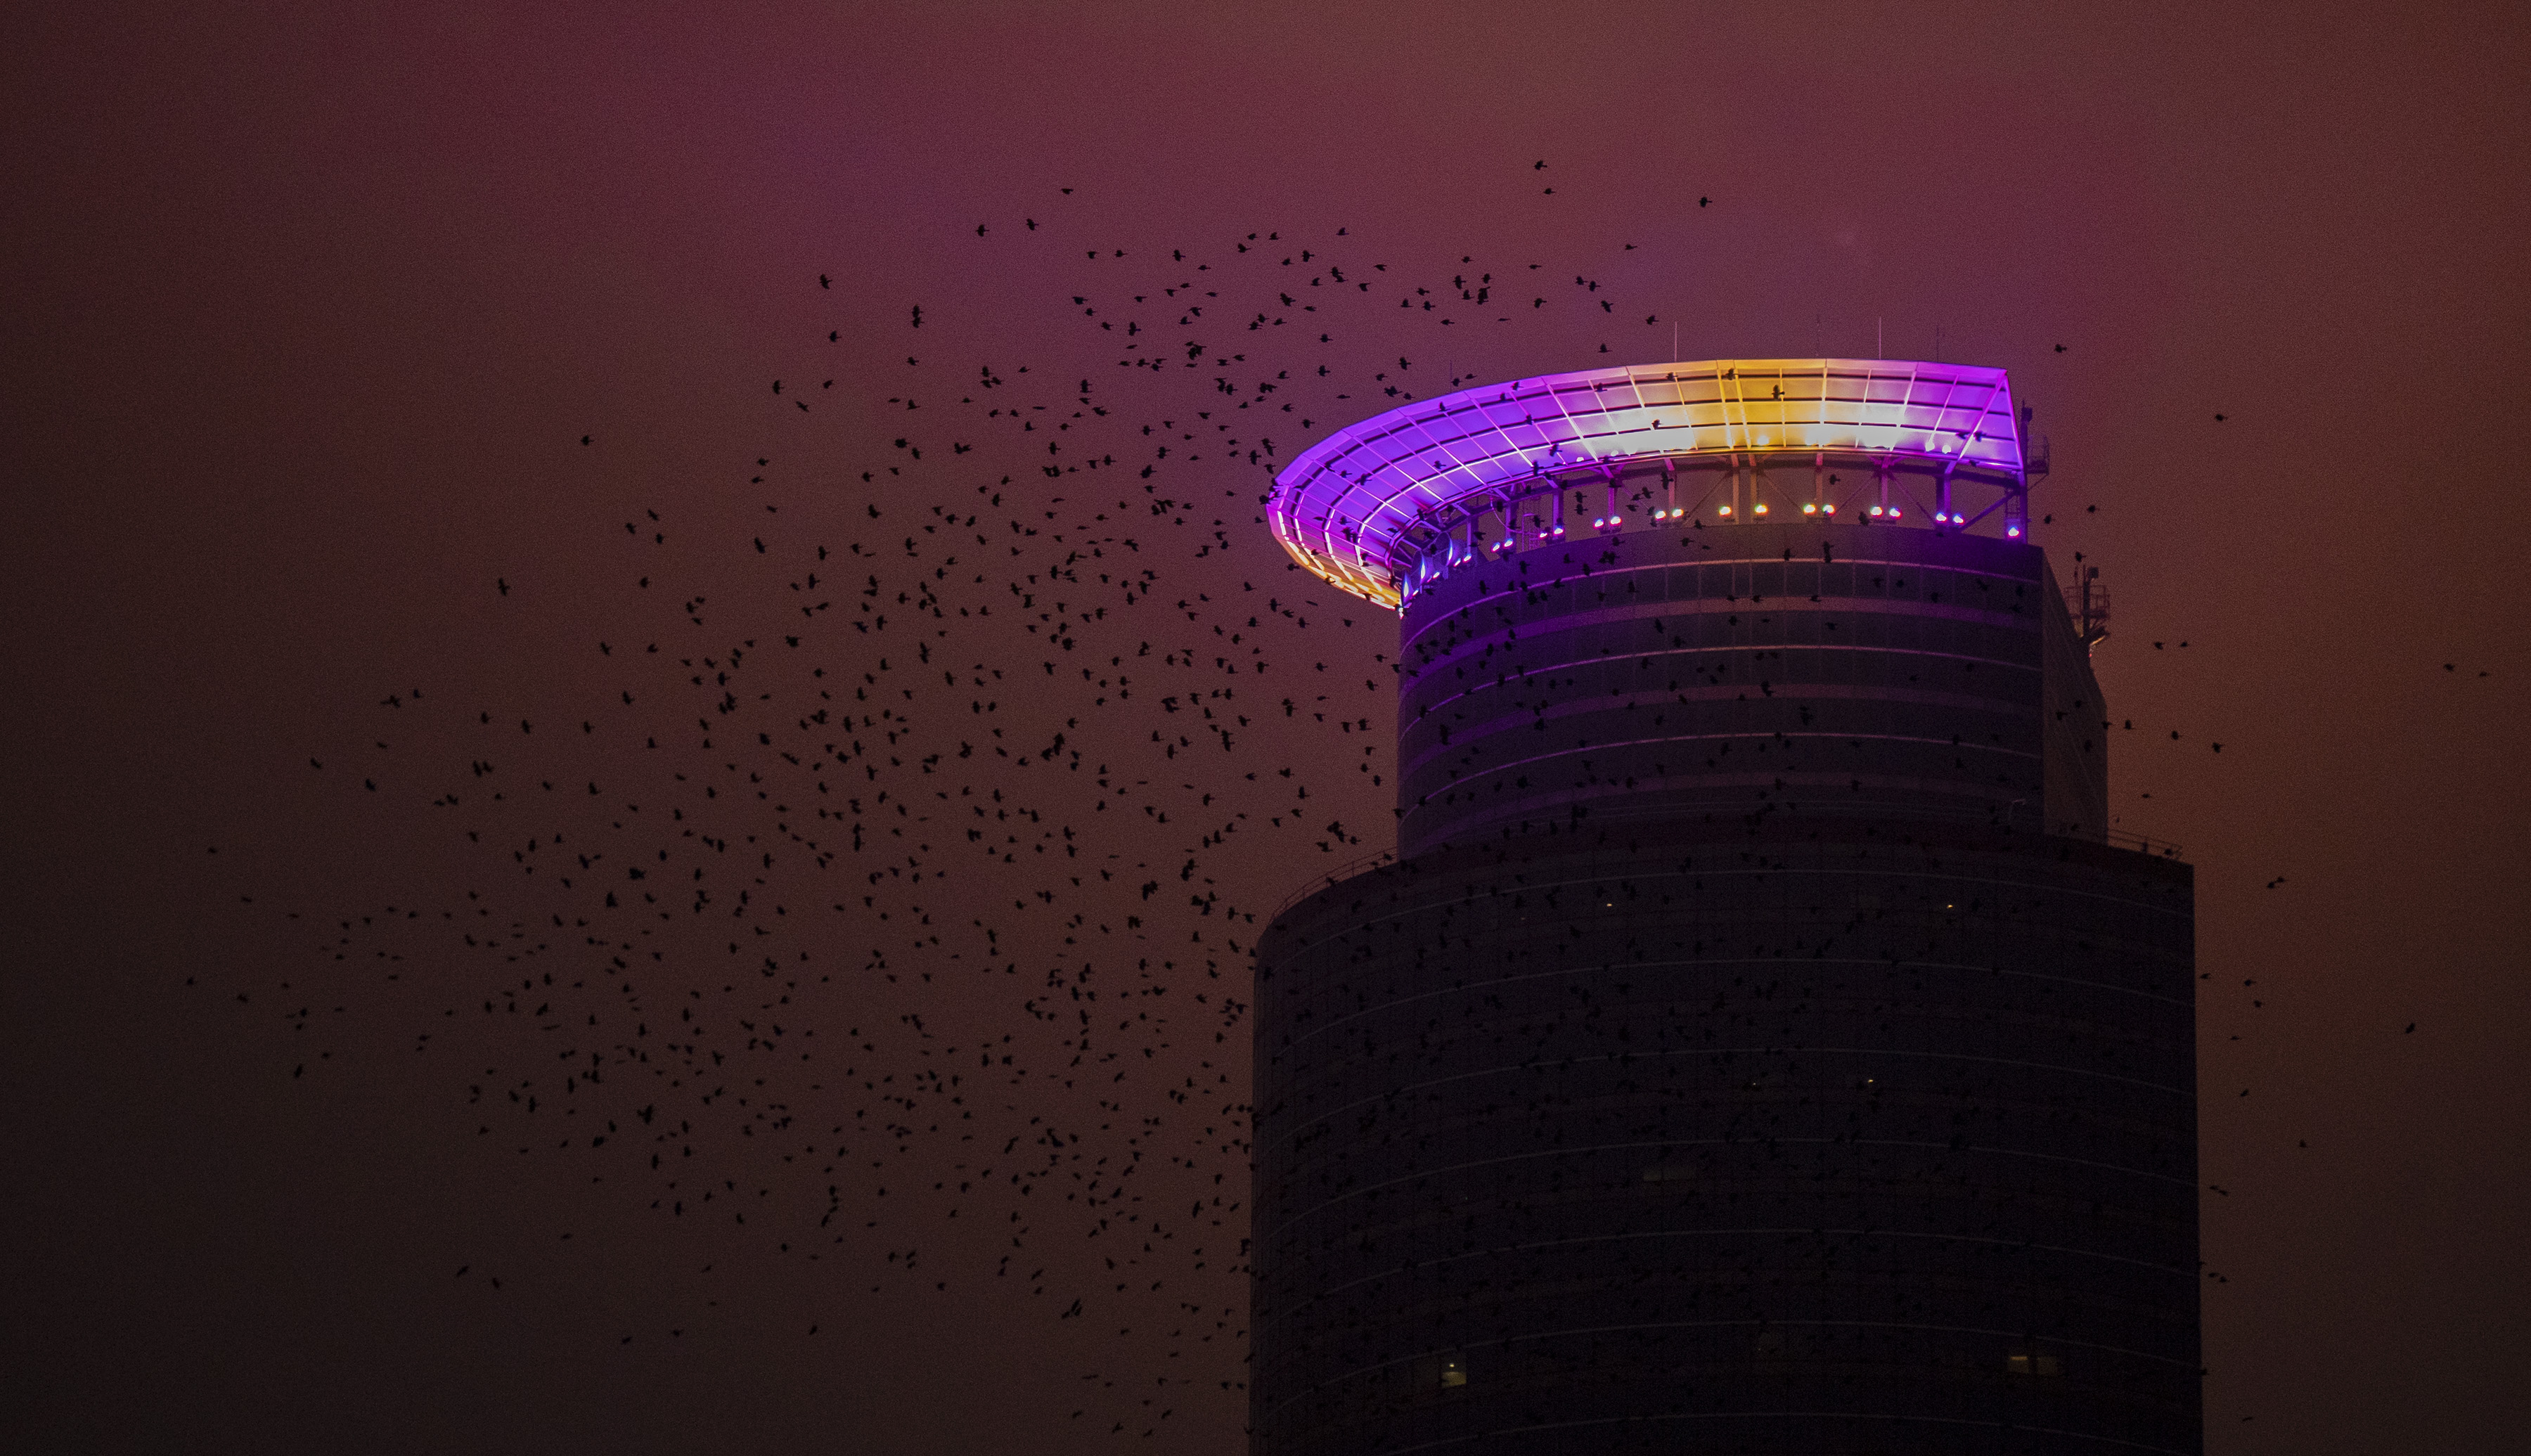 Crows or starlings circled Capella Tower in December 2020 after the Minnesota Vikings defeated the Jacksonville Jaguars. The crown was awash in purple and yellow light.